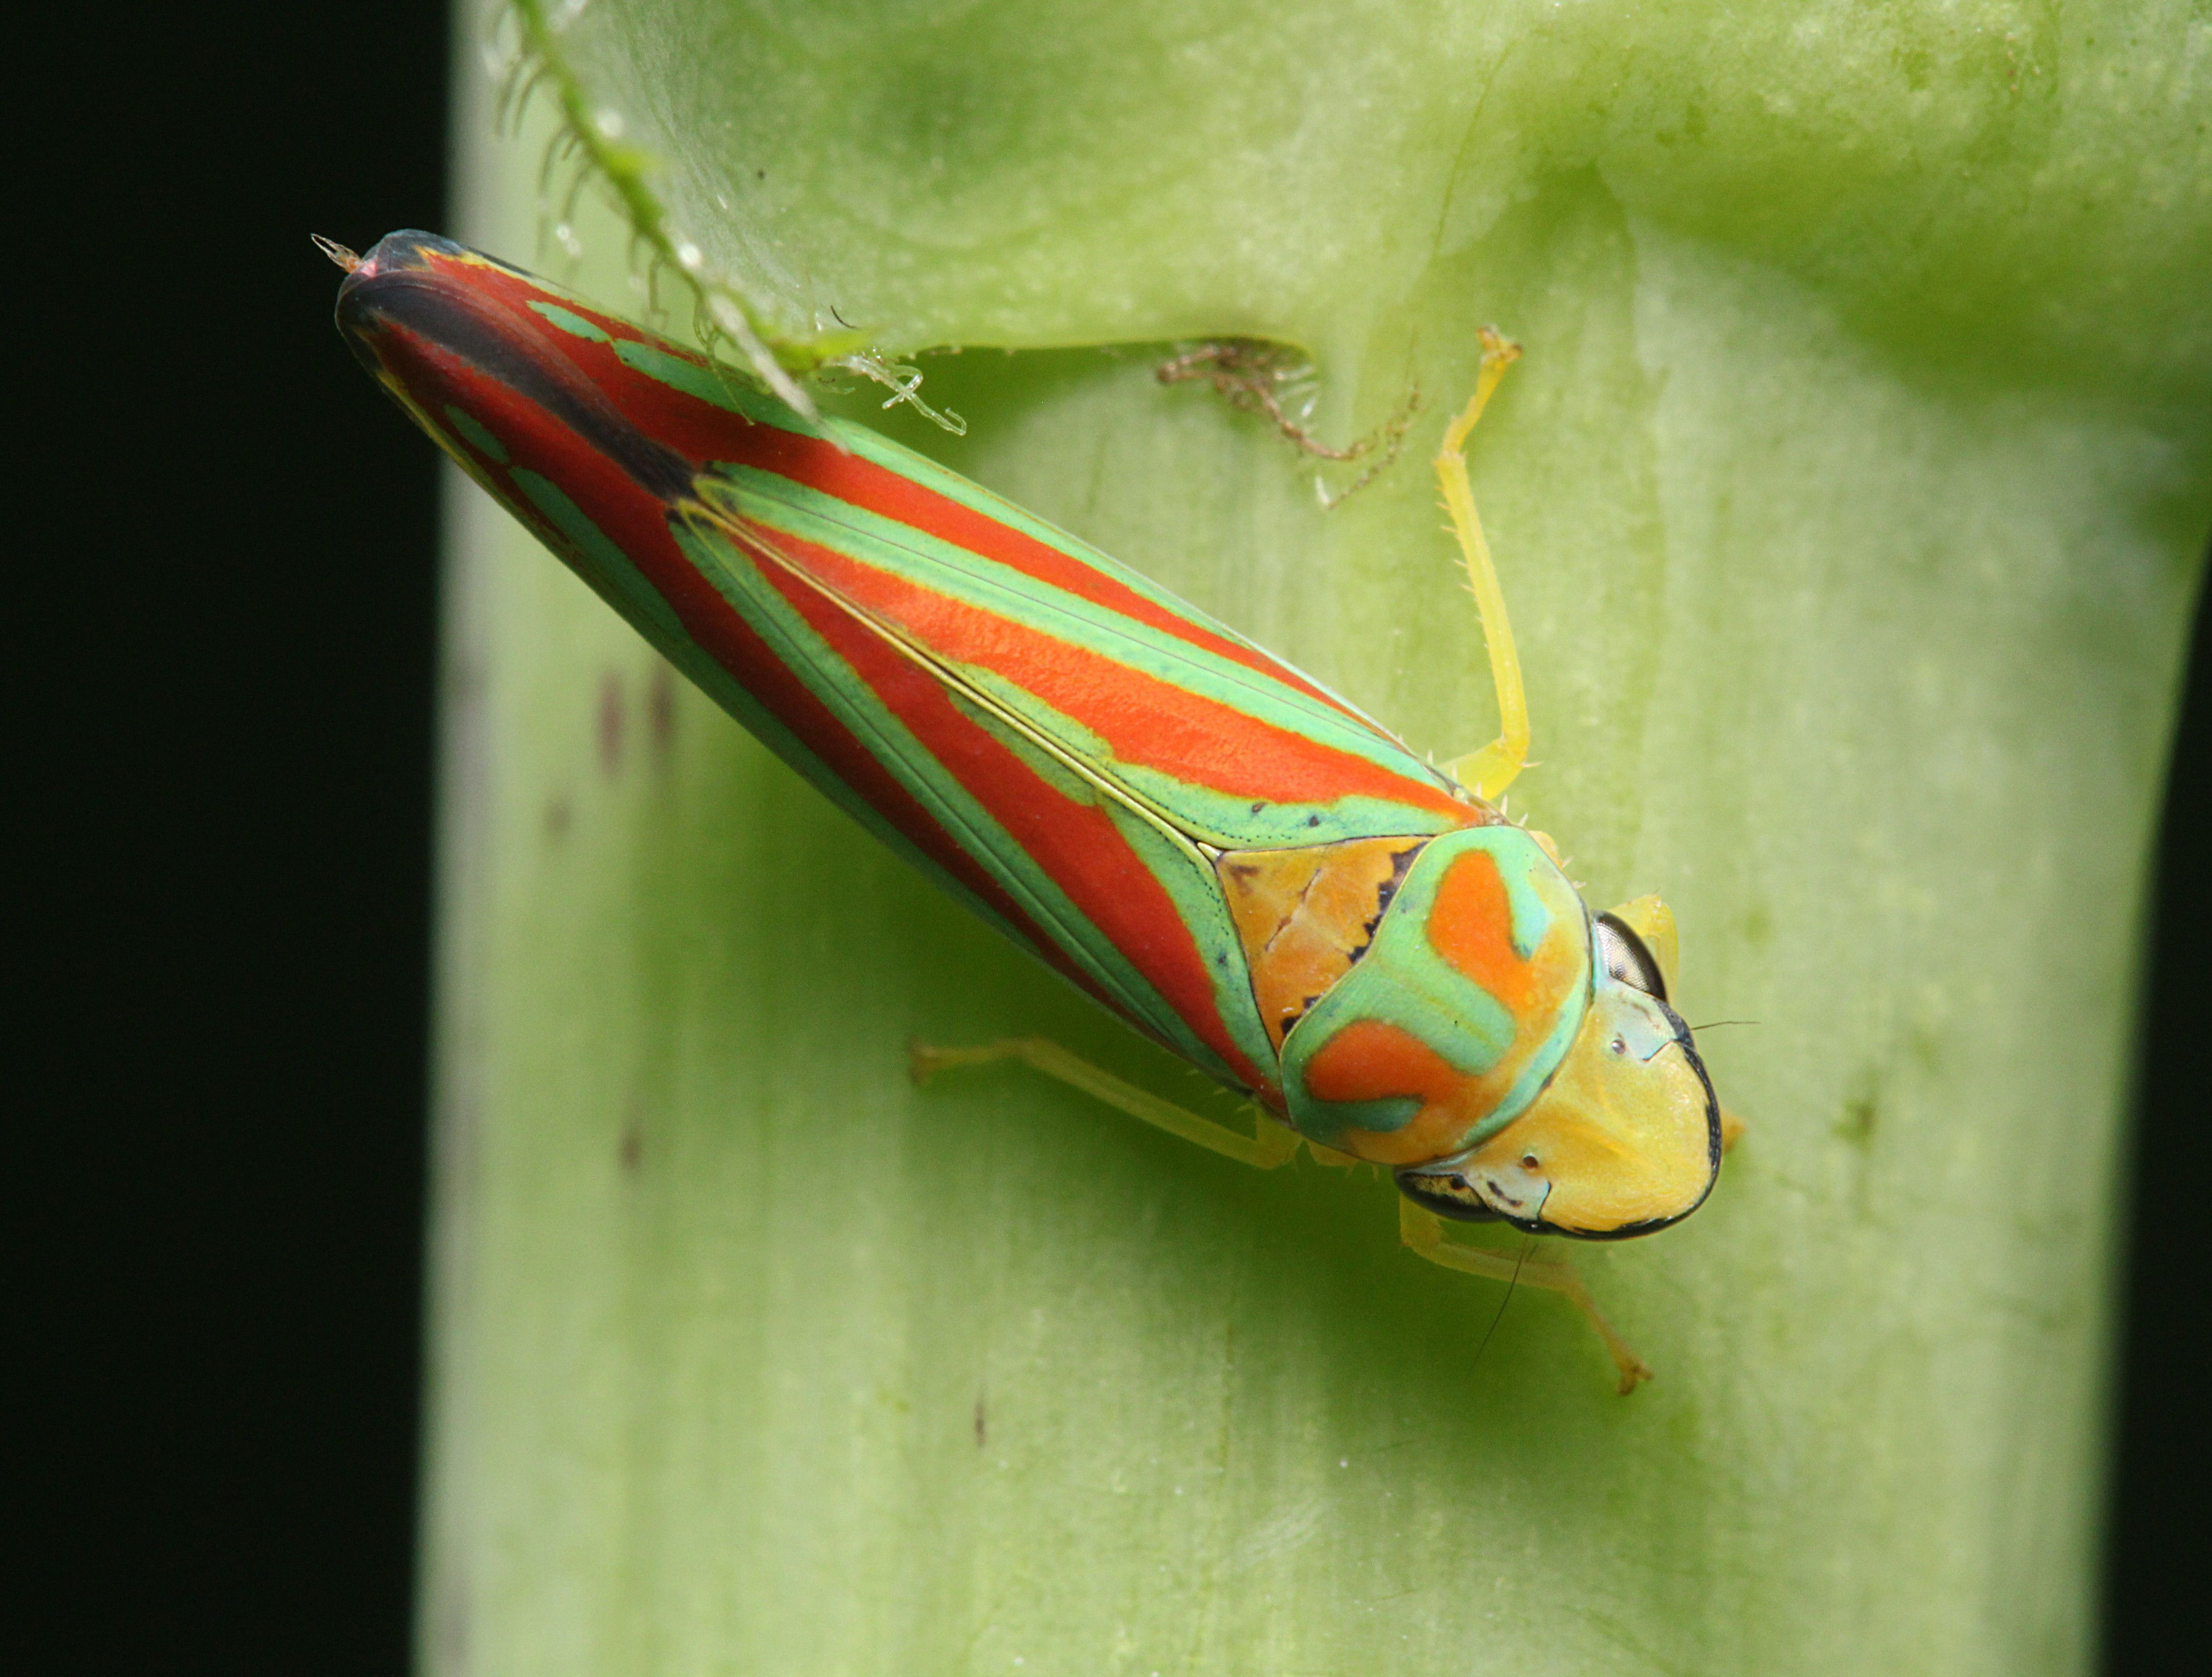 Leafhopper Free HD Wallpapers Image Backgrounds